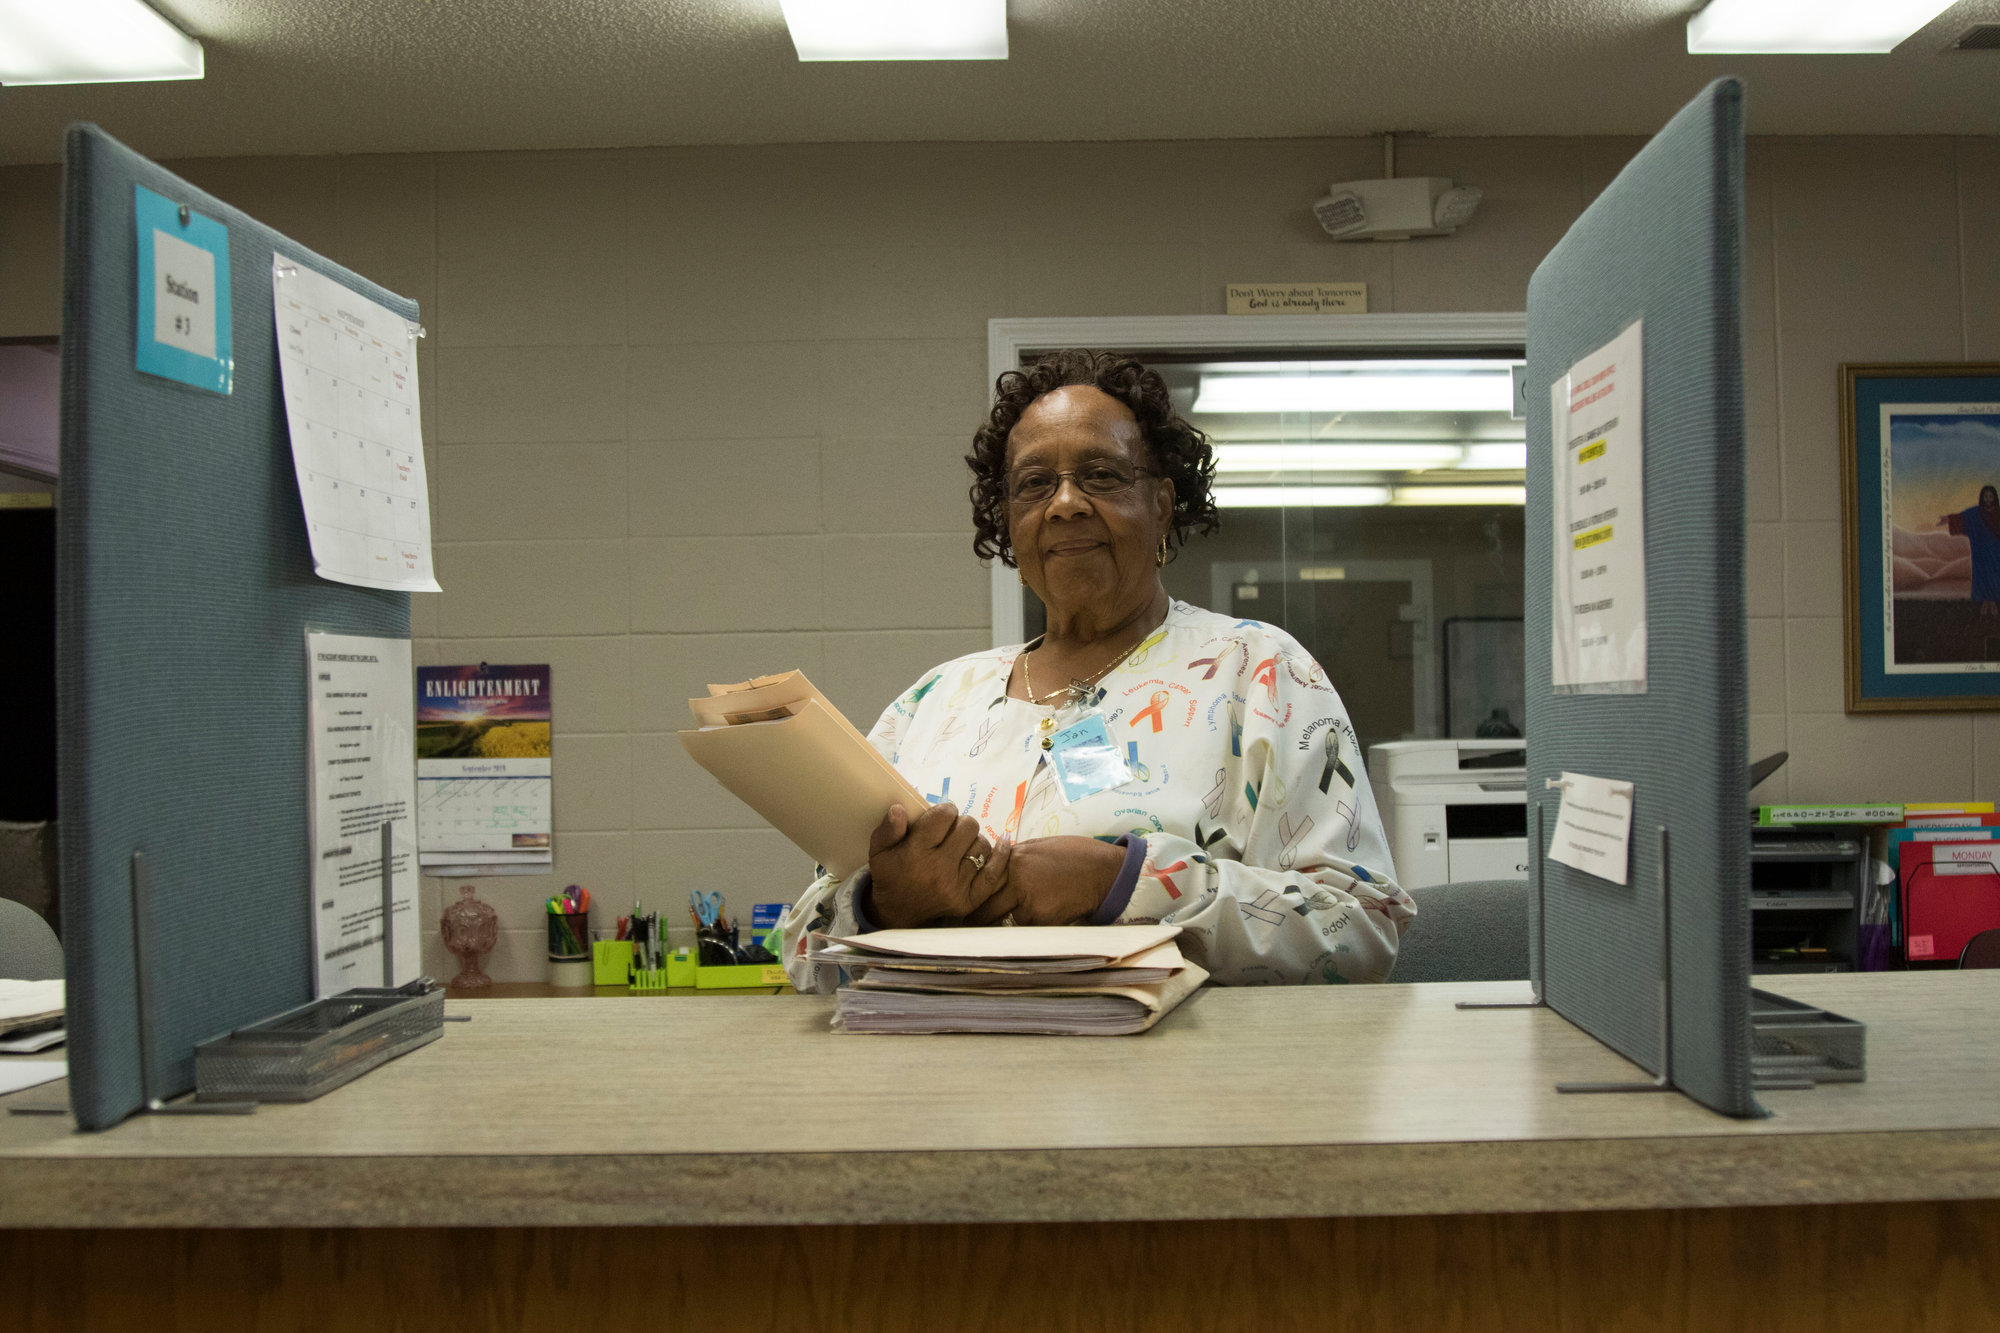 Jan Coplin runs the front desk and intake of clients at the medical clinic. The clinic is just one of the ministries the organization provides to those in need in the community.